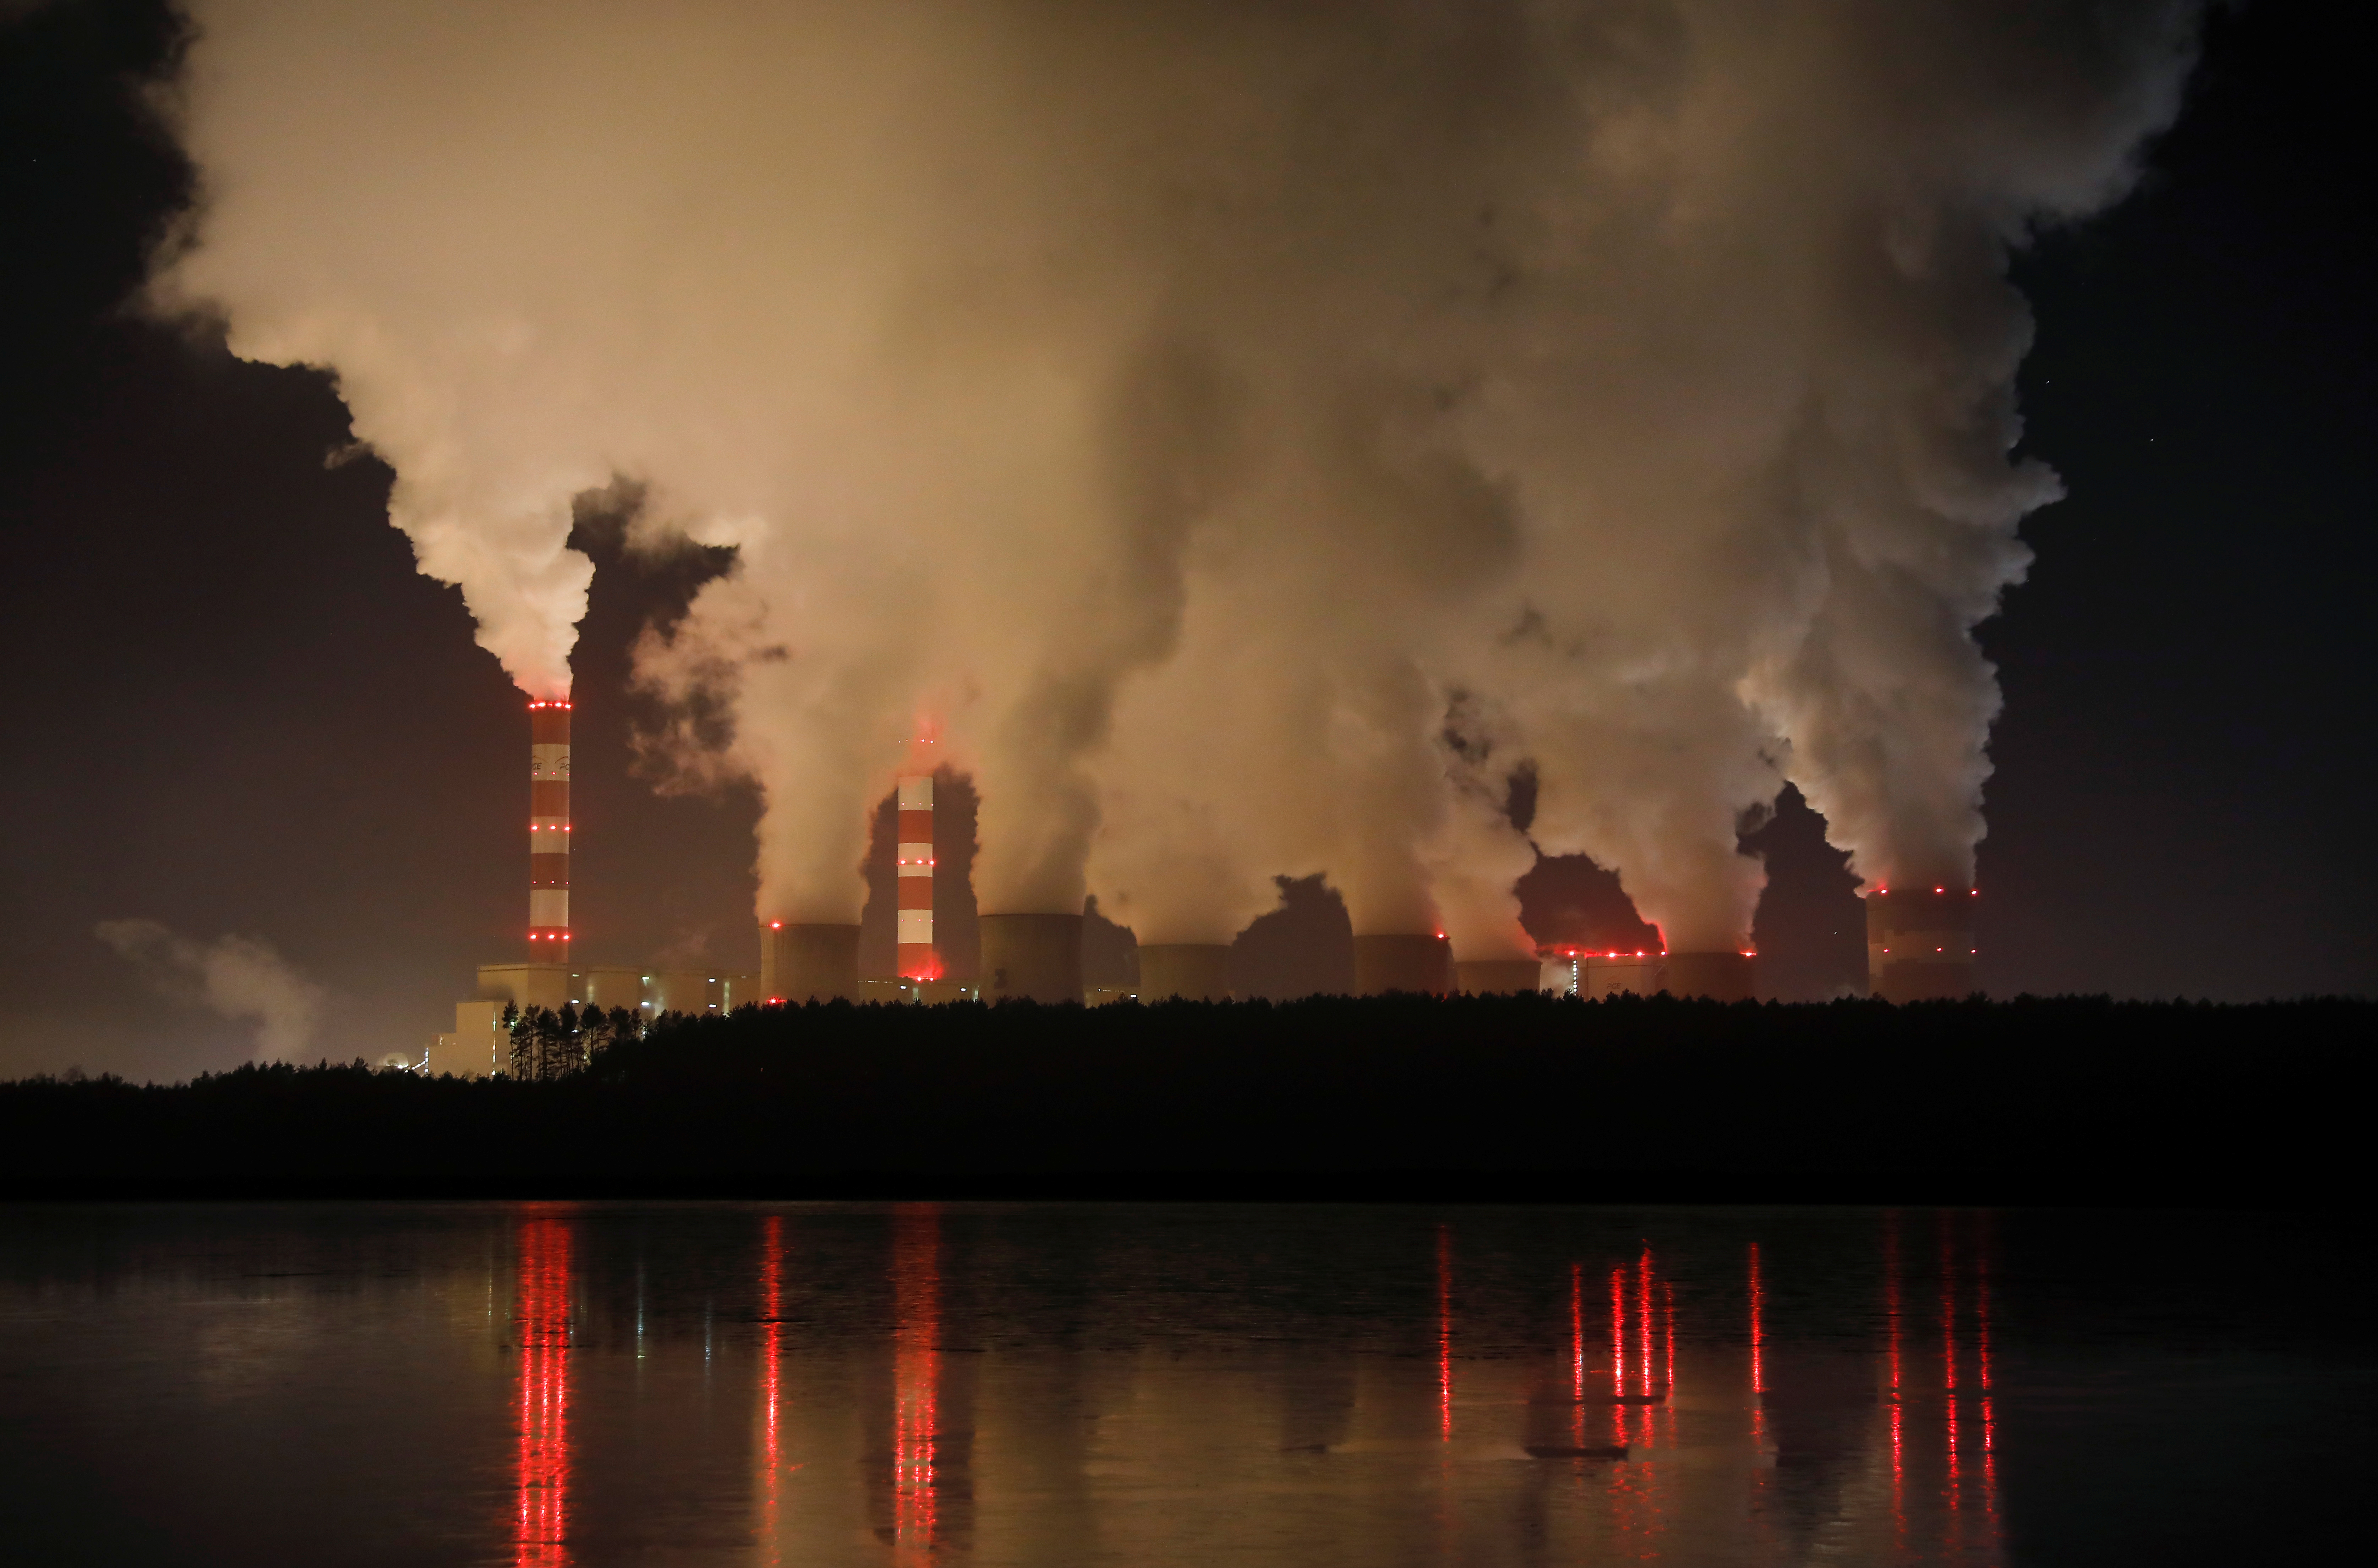 FILE - Smoke and steam billows from Belchatow Power Station, Europe's largest coal-fired power plant, operated by PGE Group, at night near Belchatow, Poland, Dec. 5, 2018.